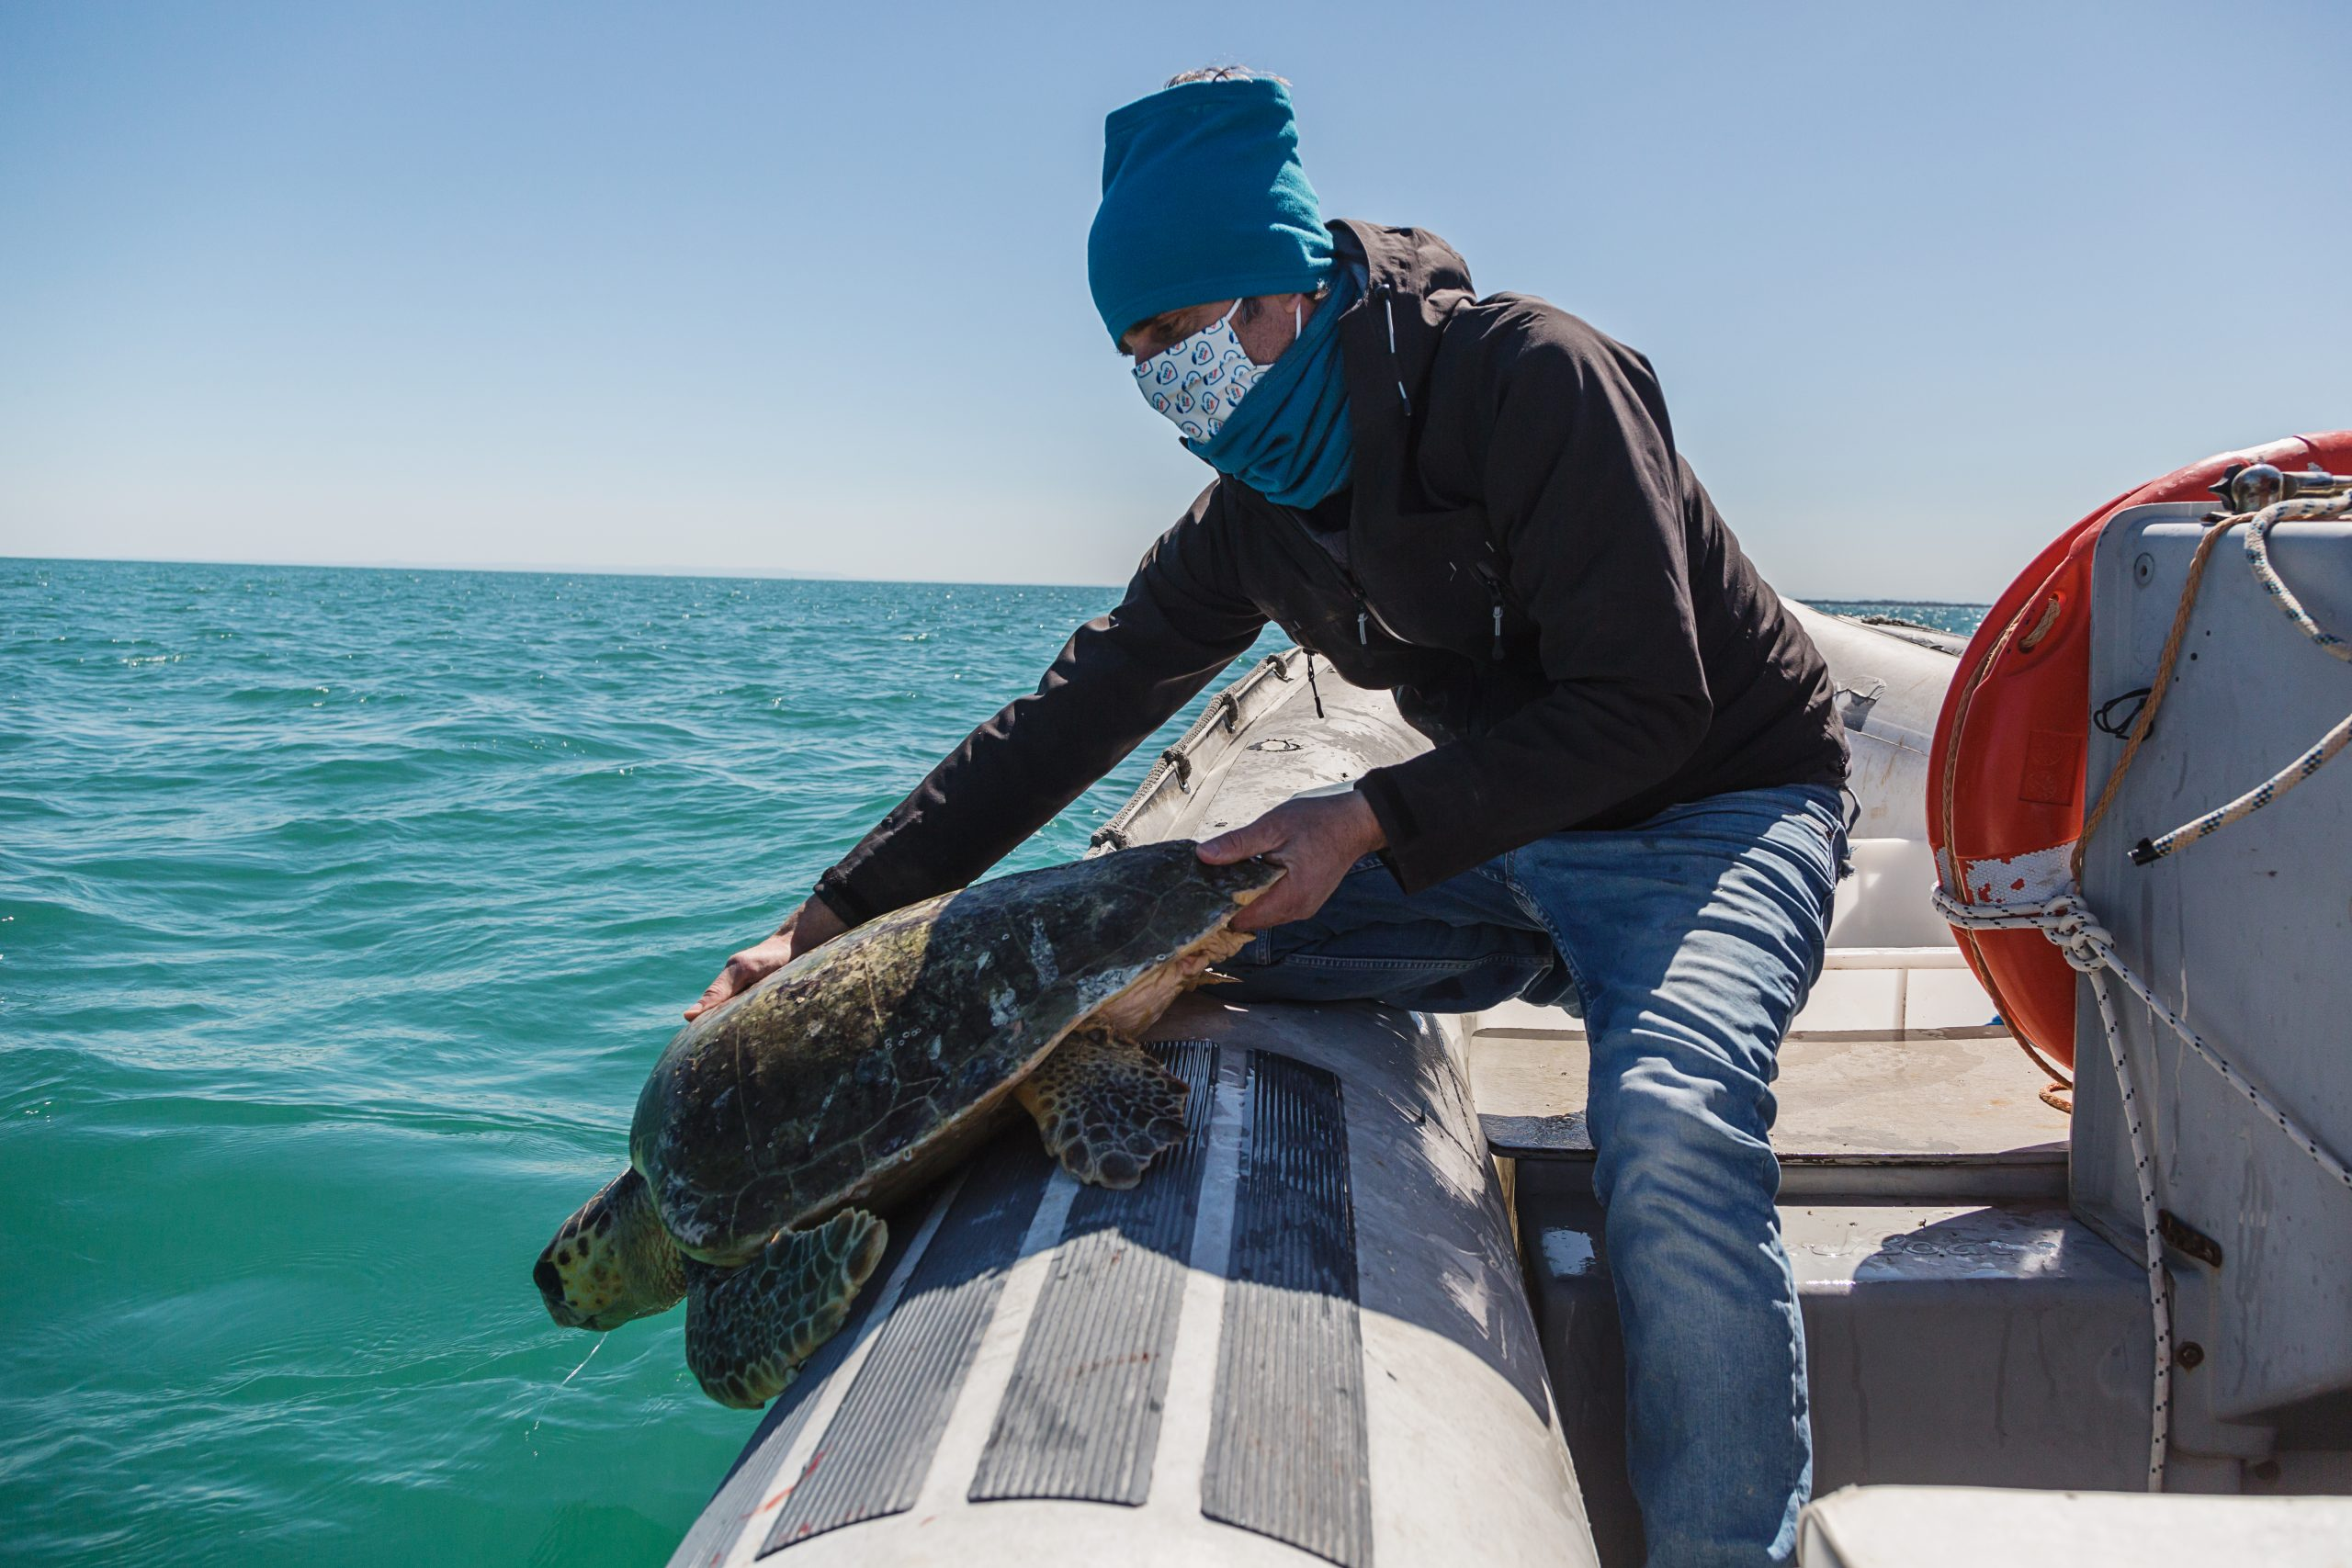 Giovanni Furii of the environmental NGO Legambiente releases a turtle saved from accidental capture into the sea.